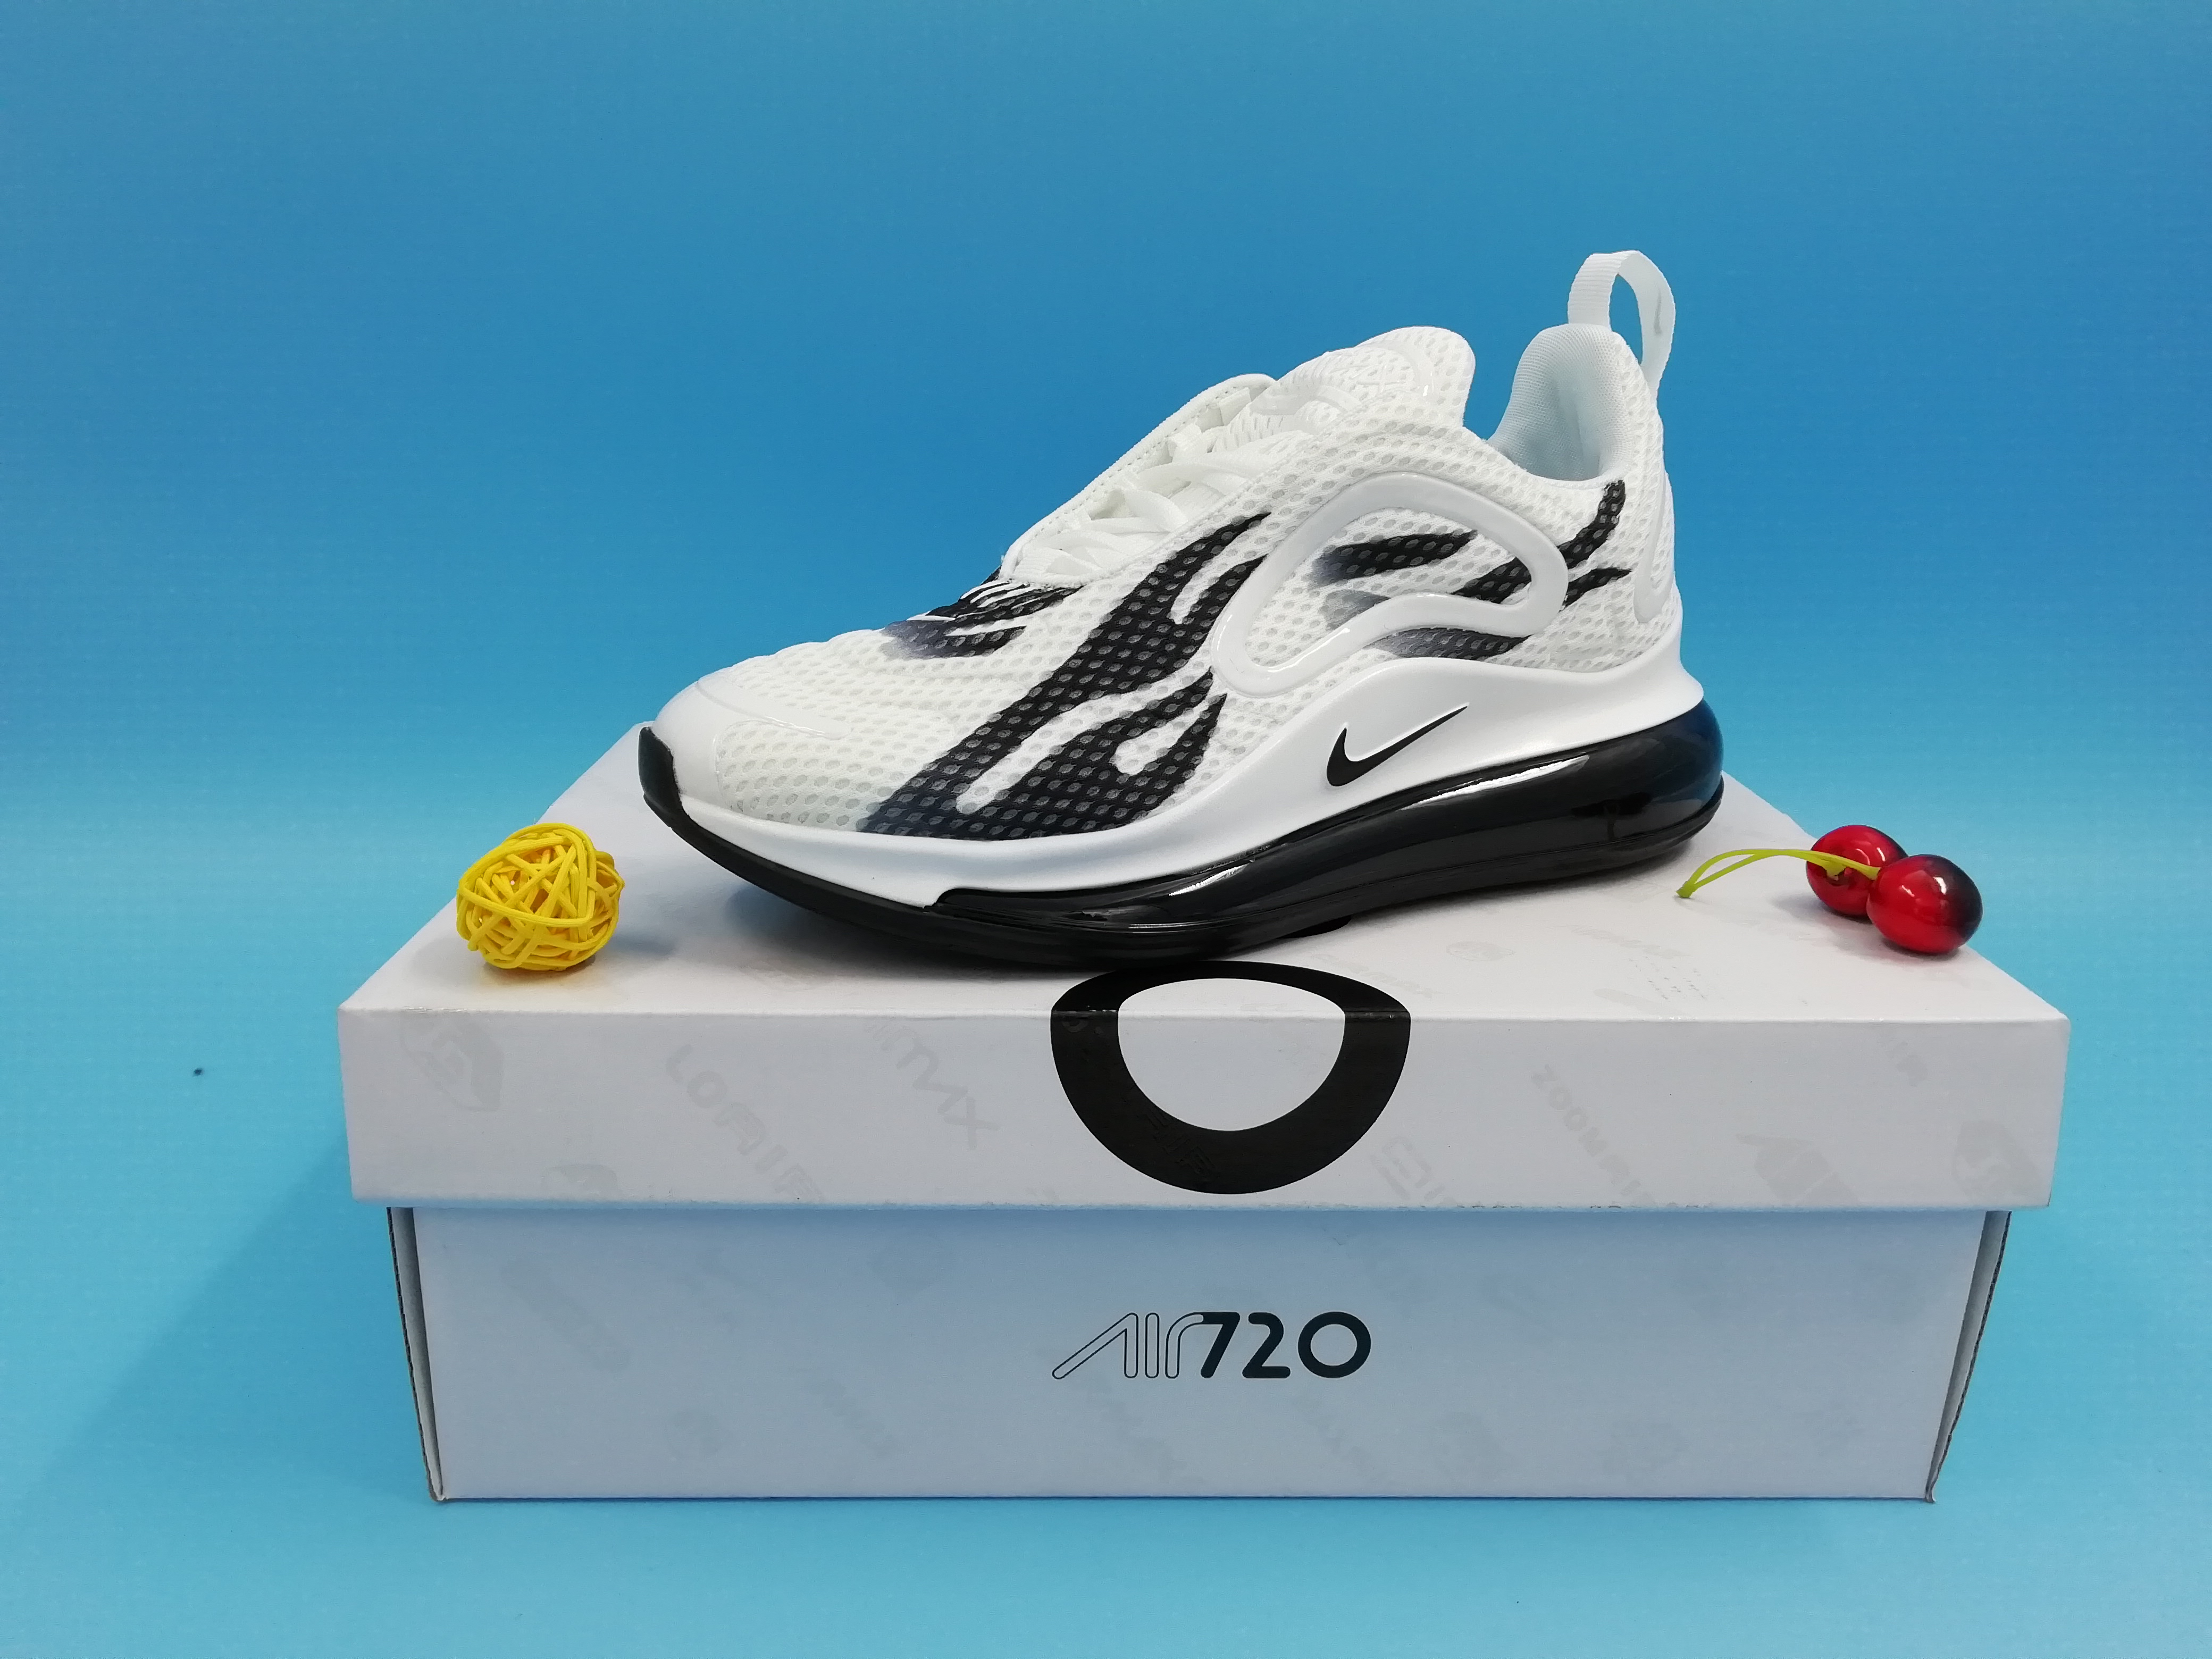 Real Nike Air Max 720 Fire Print White Black